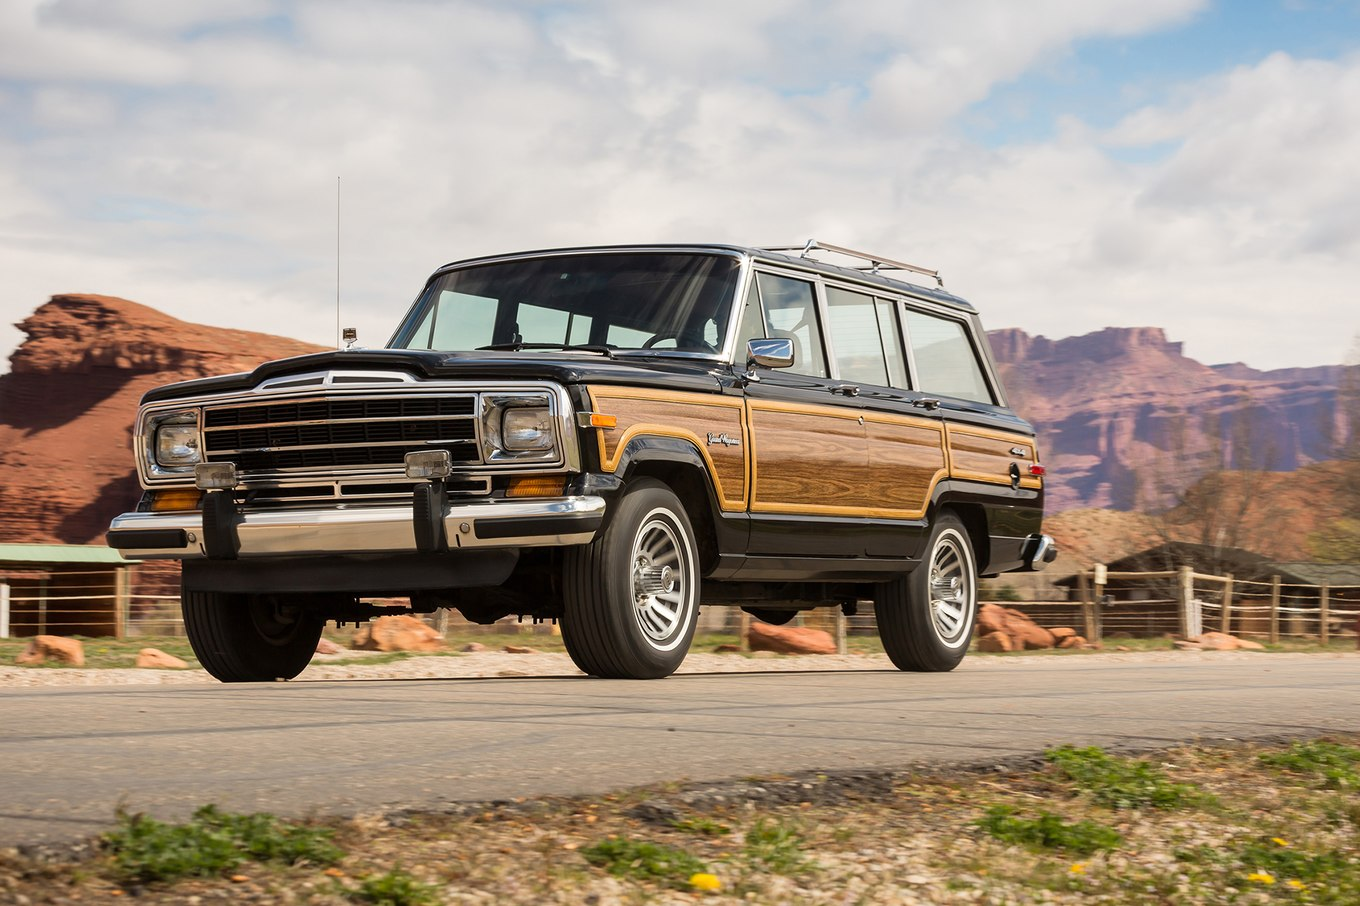 Jeep wagoneer photo - 7